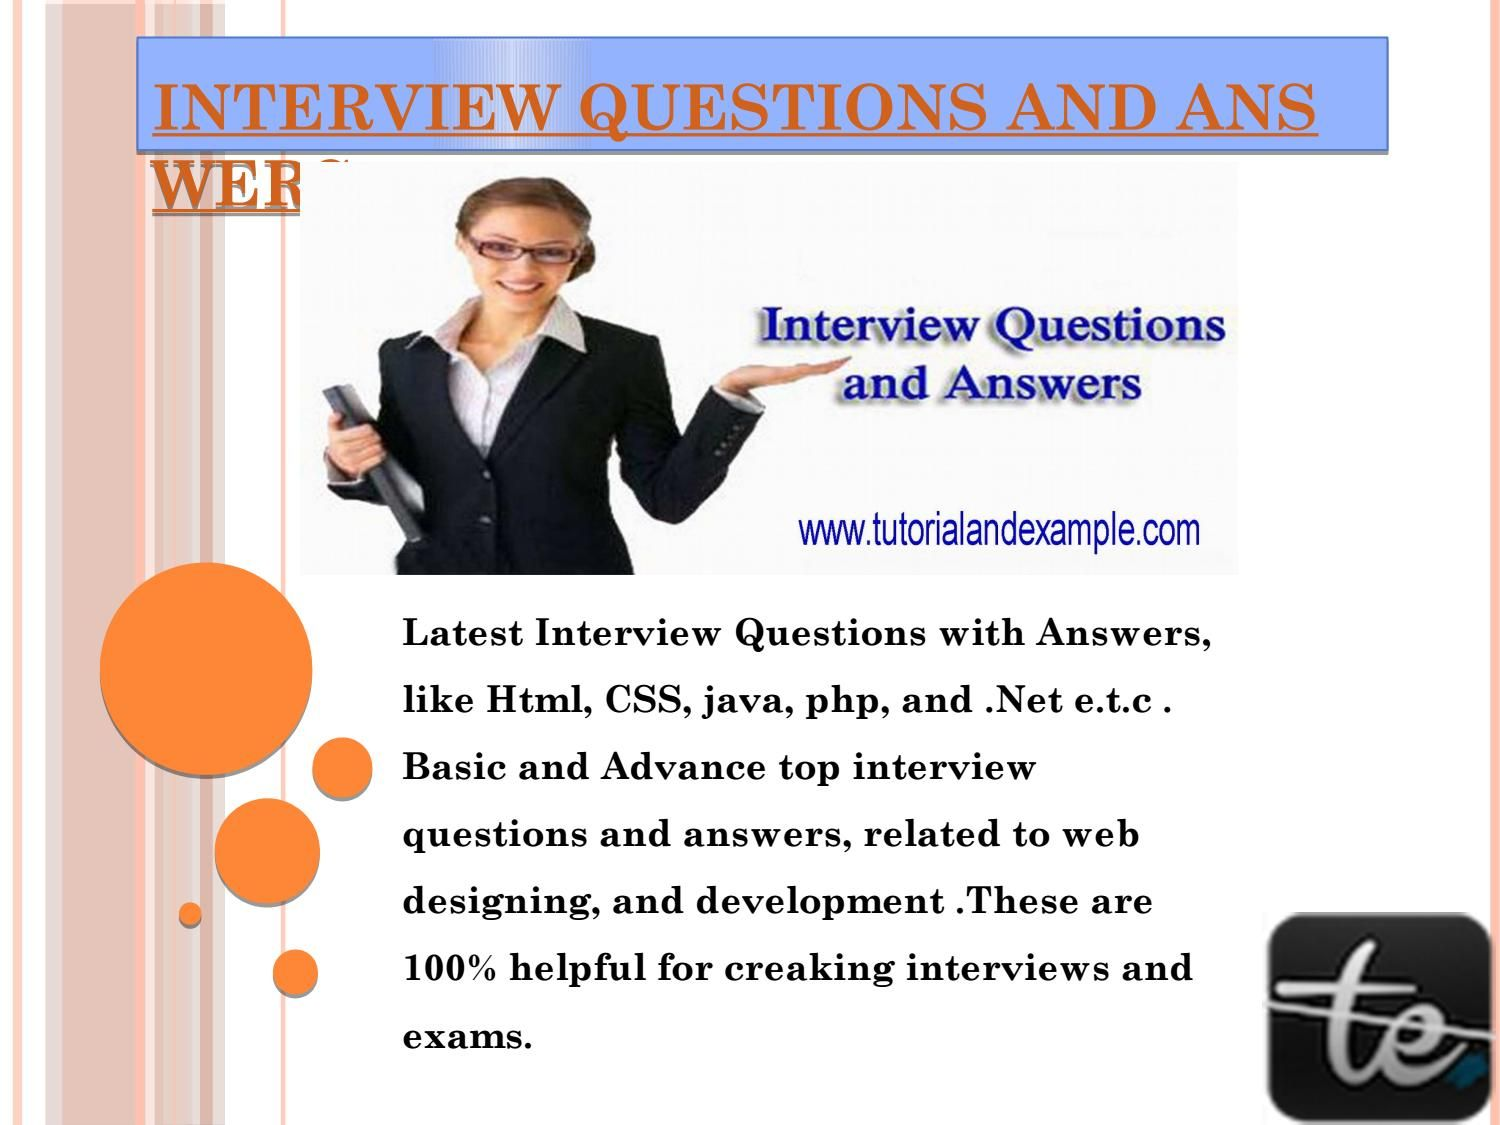 Interview Questions And Answers Top Interview Questions Interview Questions And Answers Interview Questions Top Interview Questions